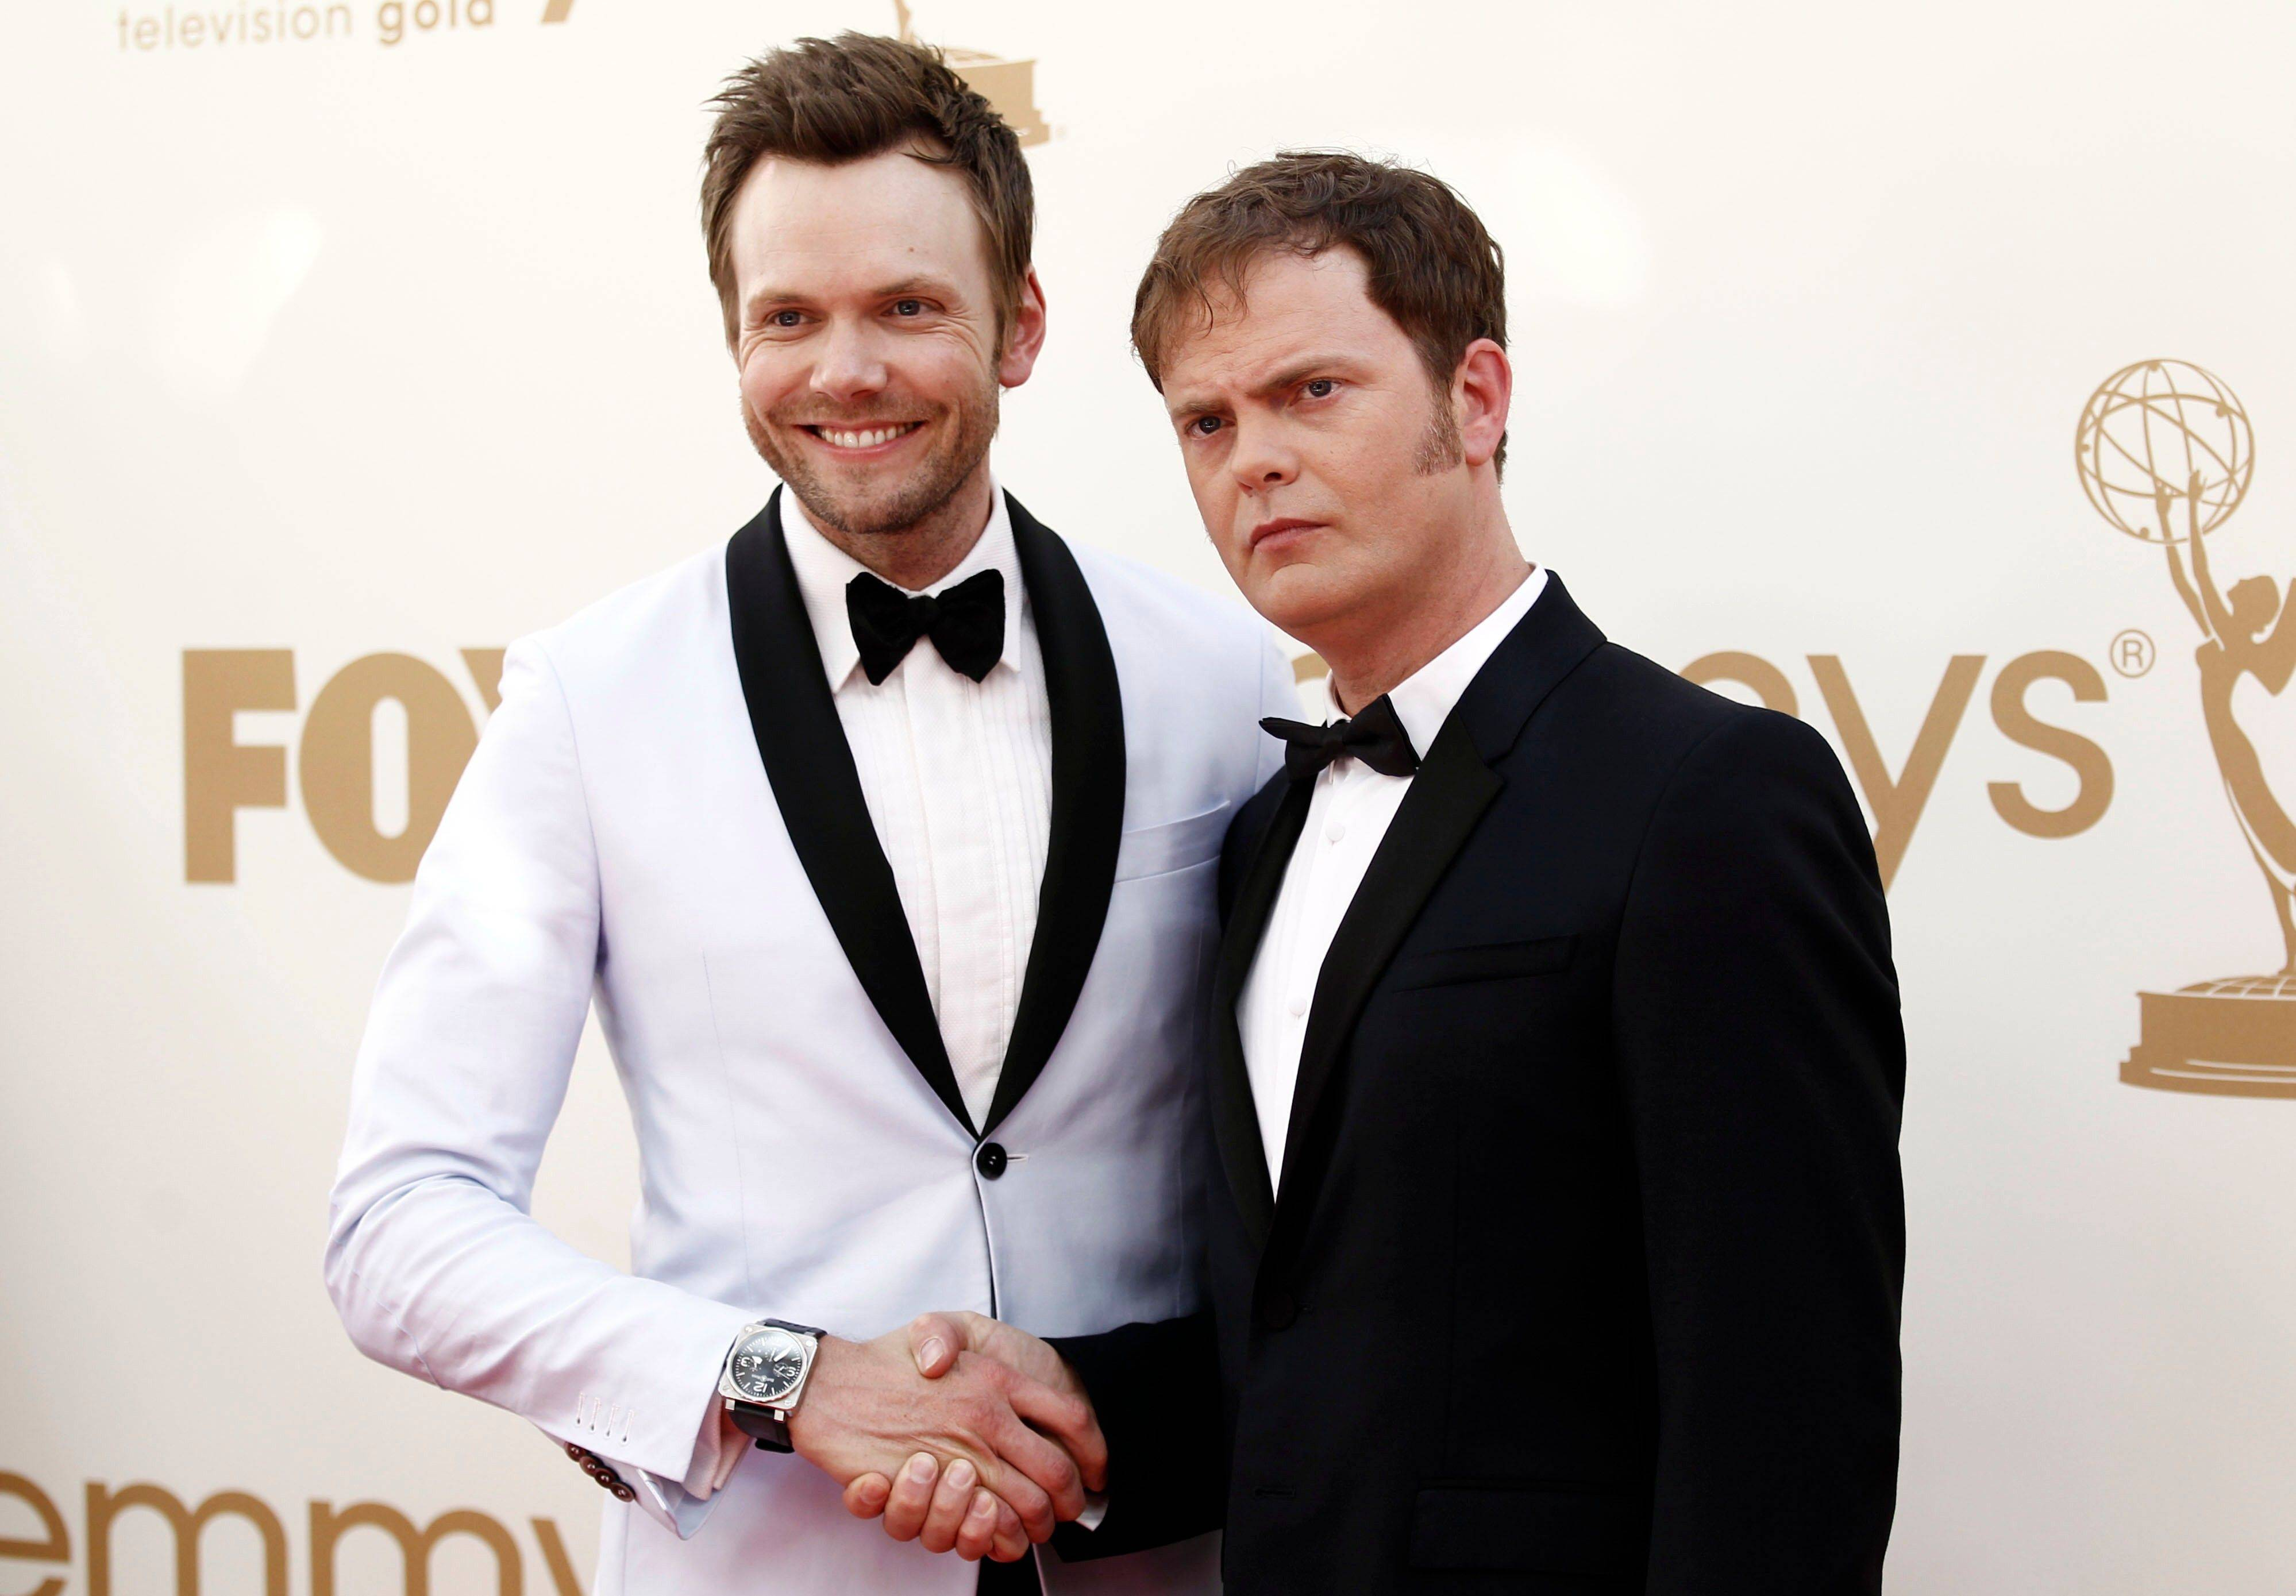 """The Office"" star Rainn Wilson, and ""Community"" star Joel McHale manage to have a litle bit of fun before the start of the ceremony."